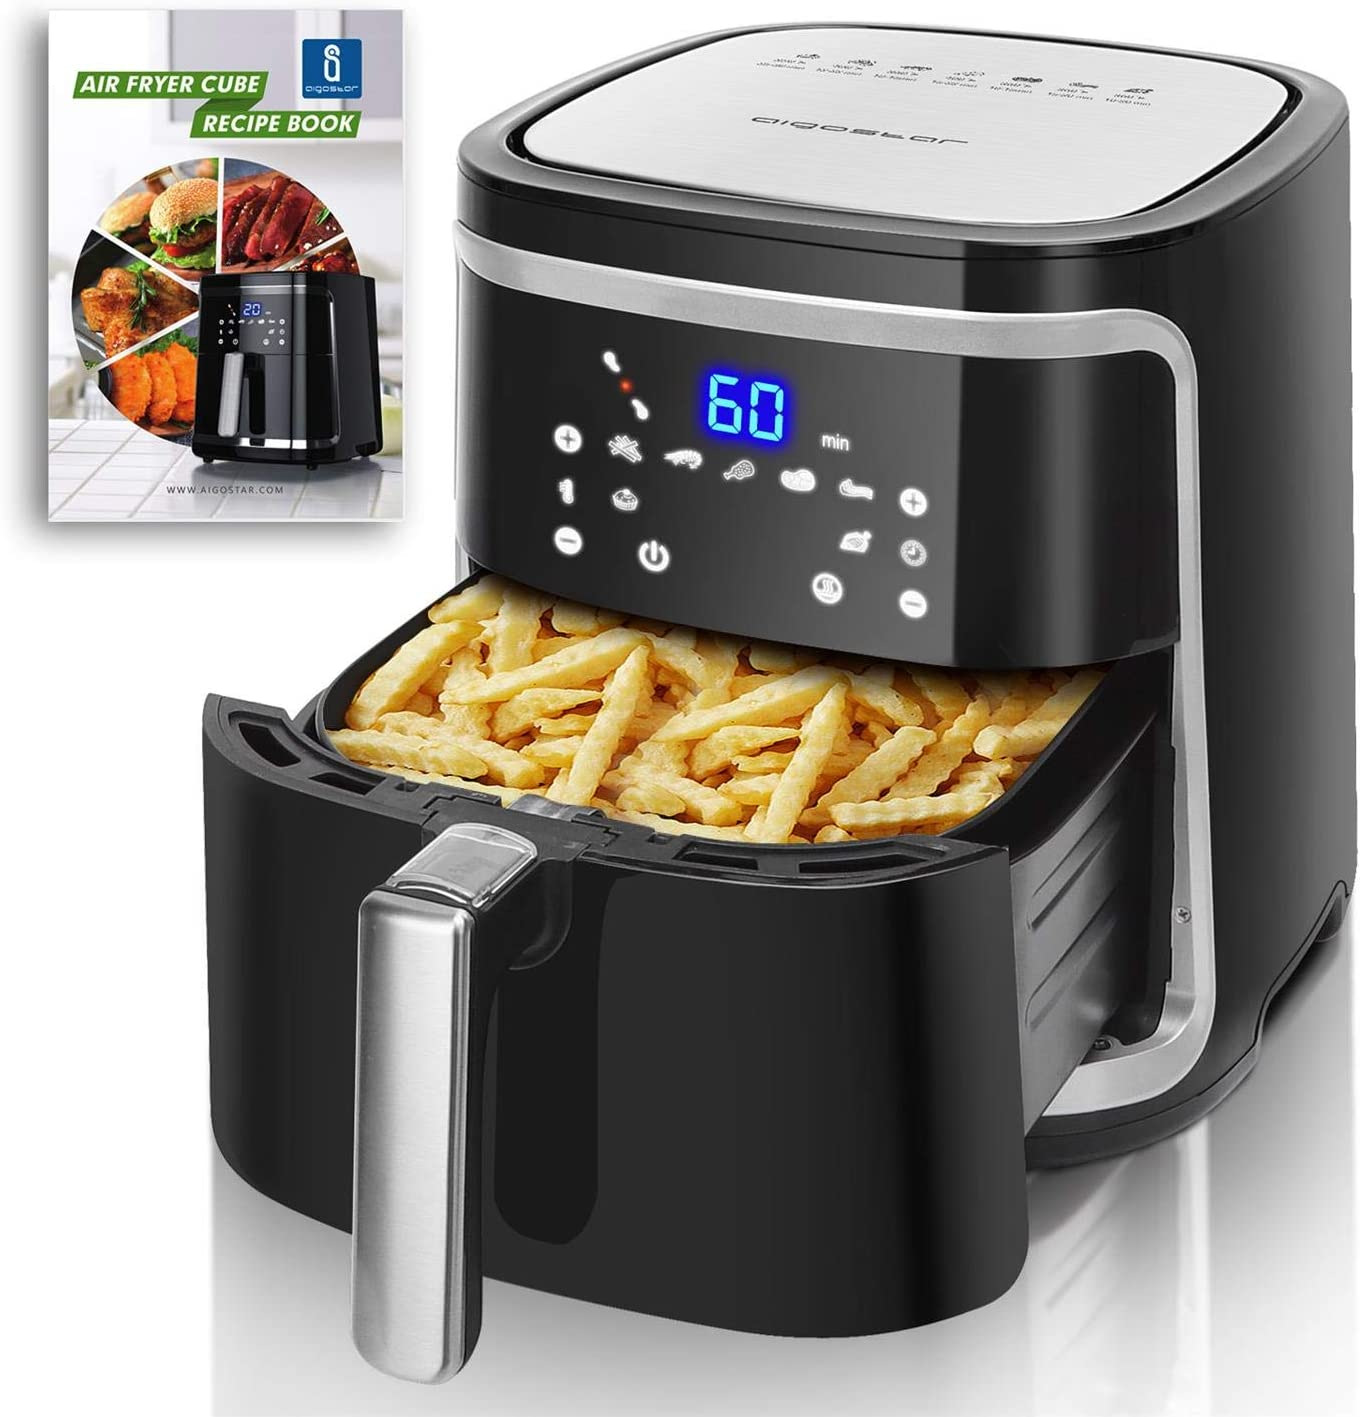 Large Air Fryer XXL, 7.4 Quart, Electric Digital Hot Air Fryer Oven Oilless Cooker with 8 Presets, Recipe Book, 1500-Watt, ETL Listed